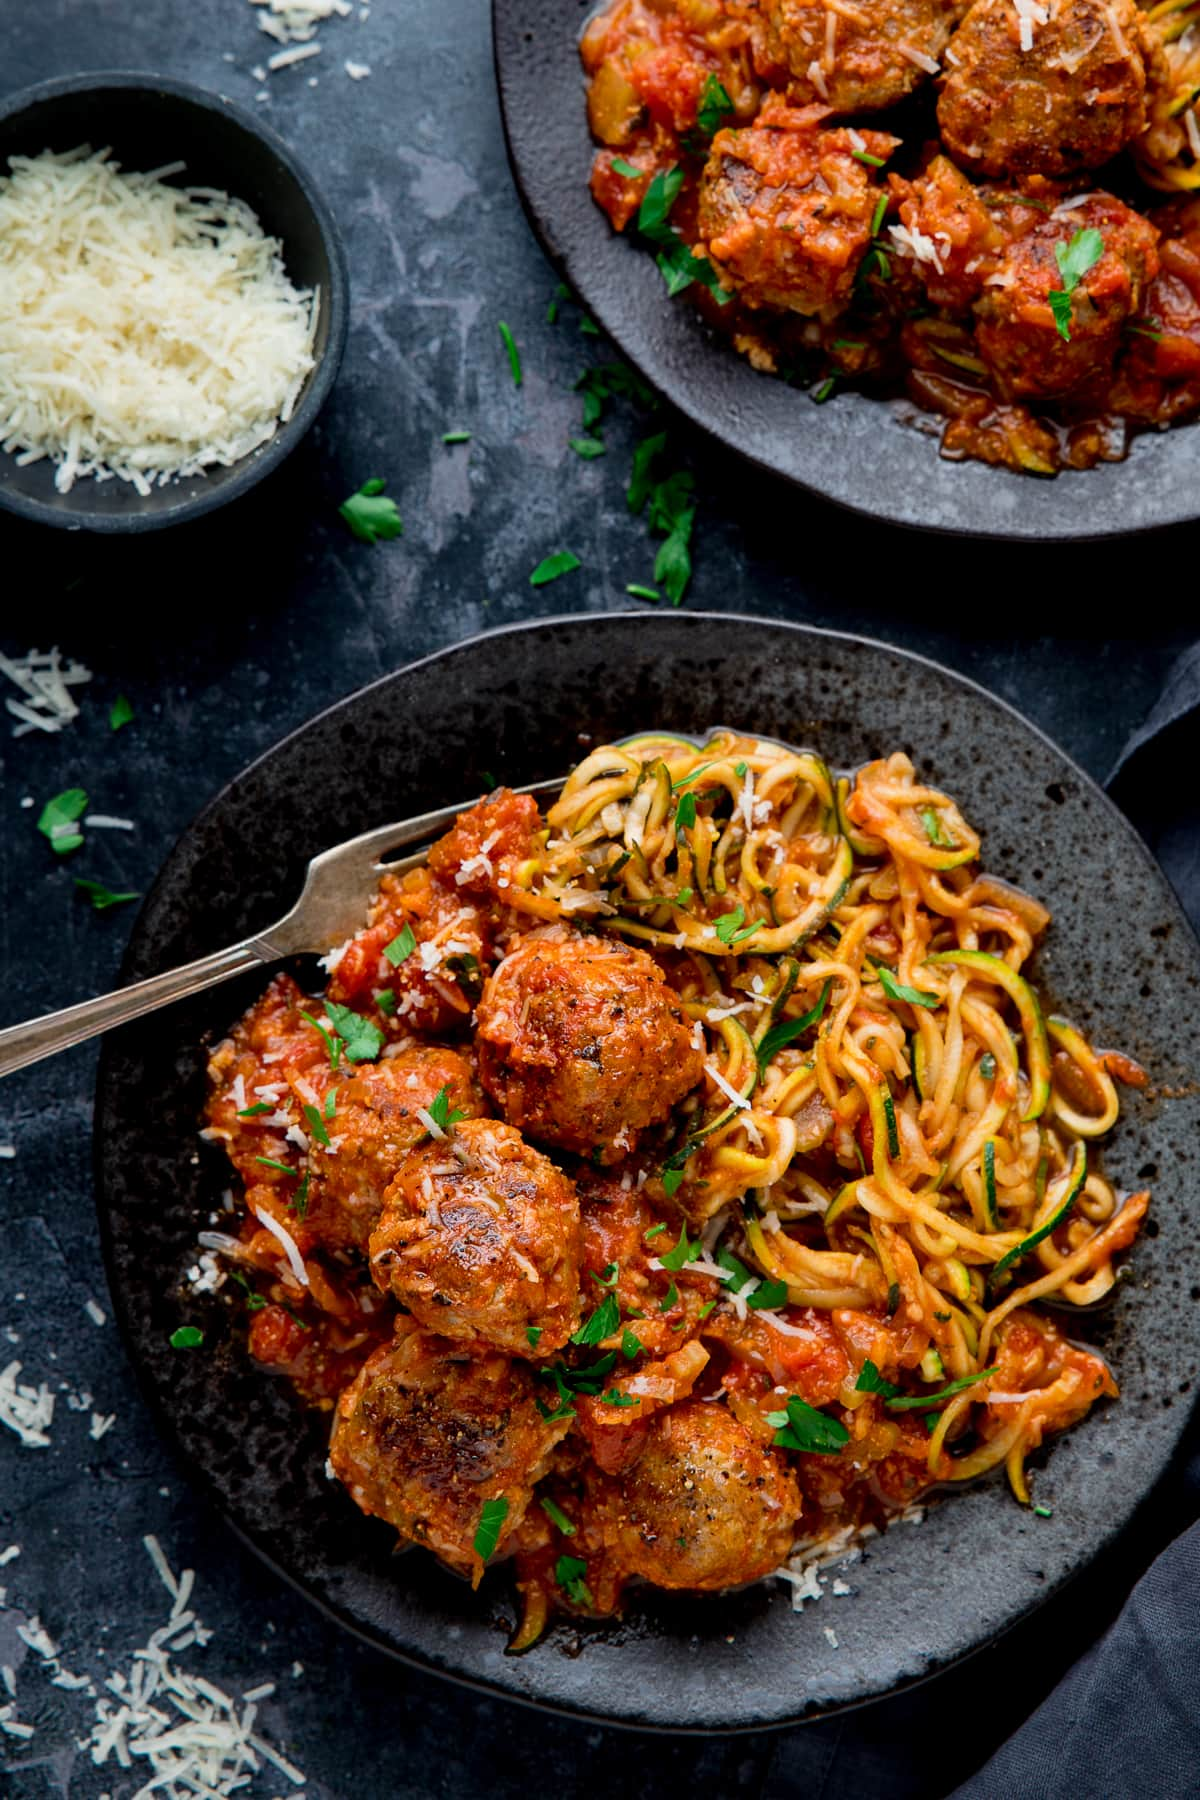 Turkey meatballs and courgetti on a black plate against a dark background